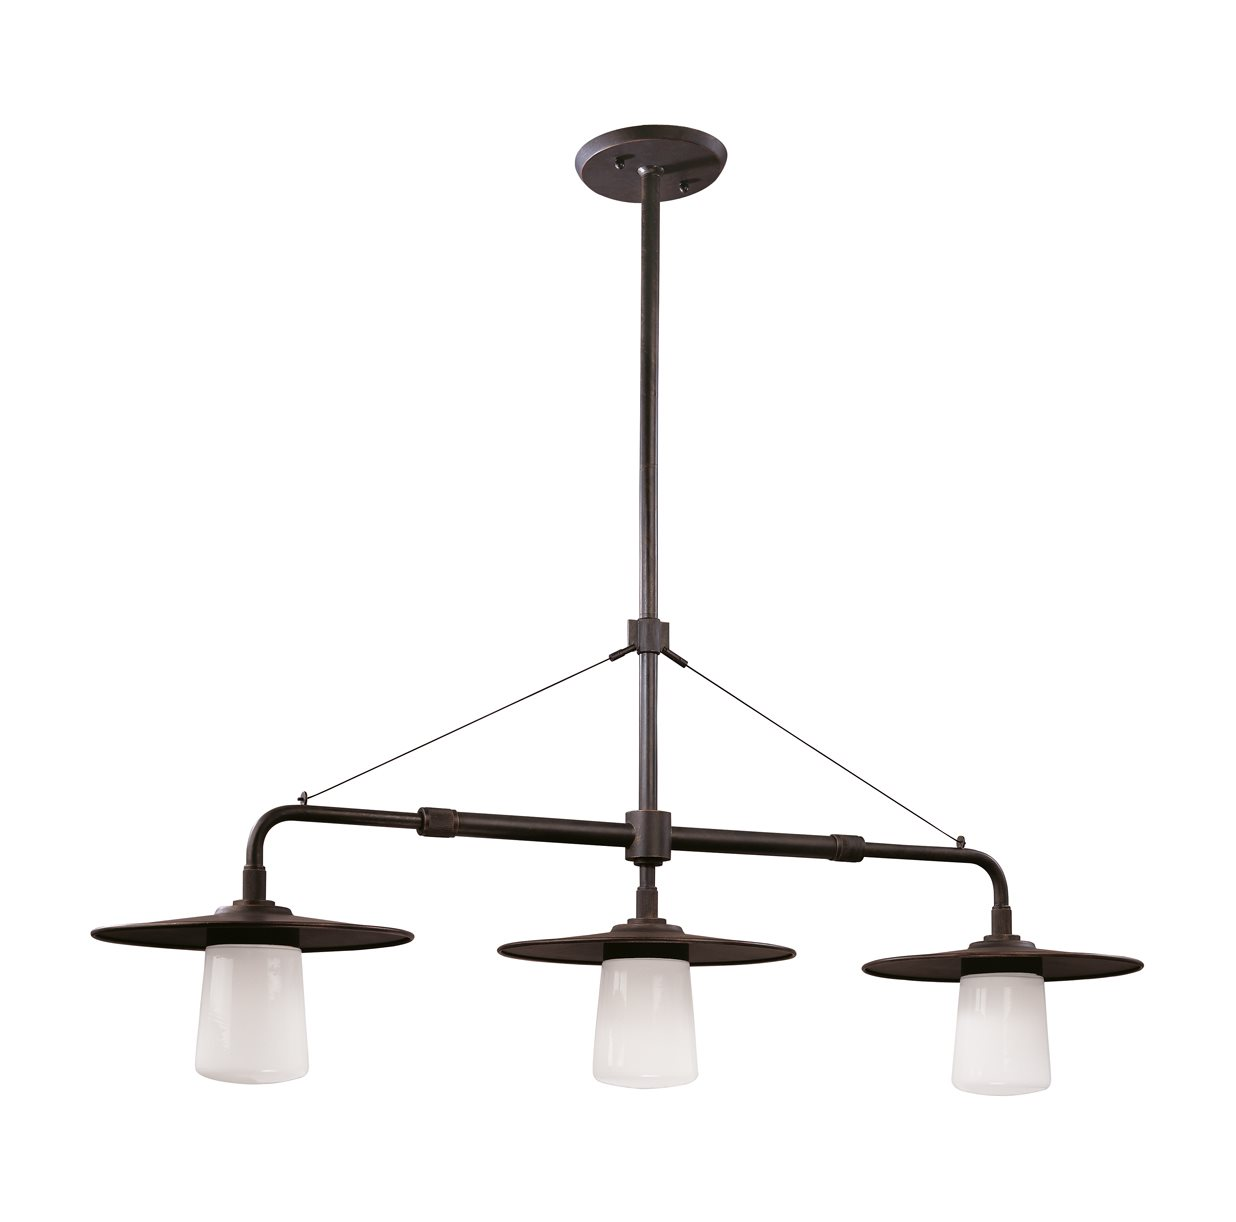 Kitchen Island Light With Fan: Troy Lighting F2313AB Edison Transitional Kitchen Island